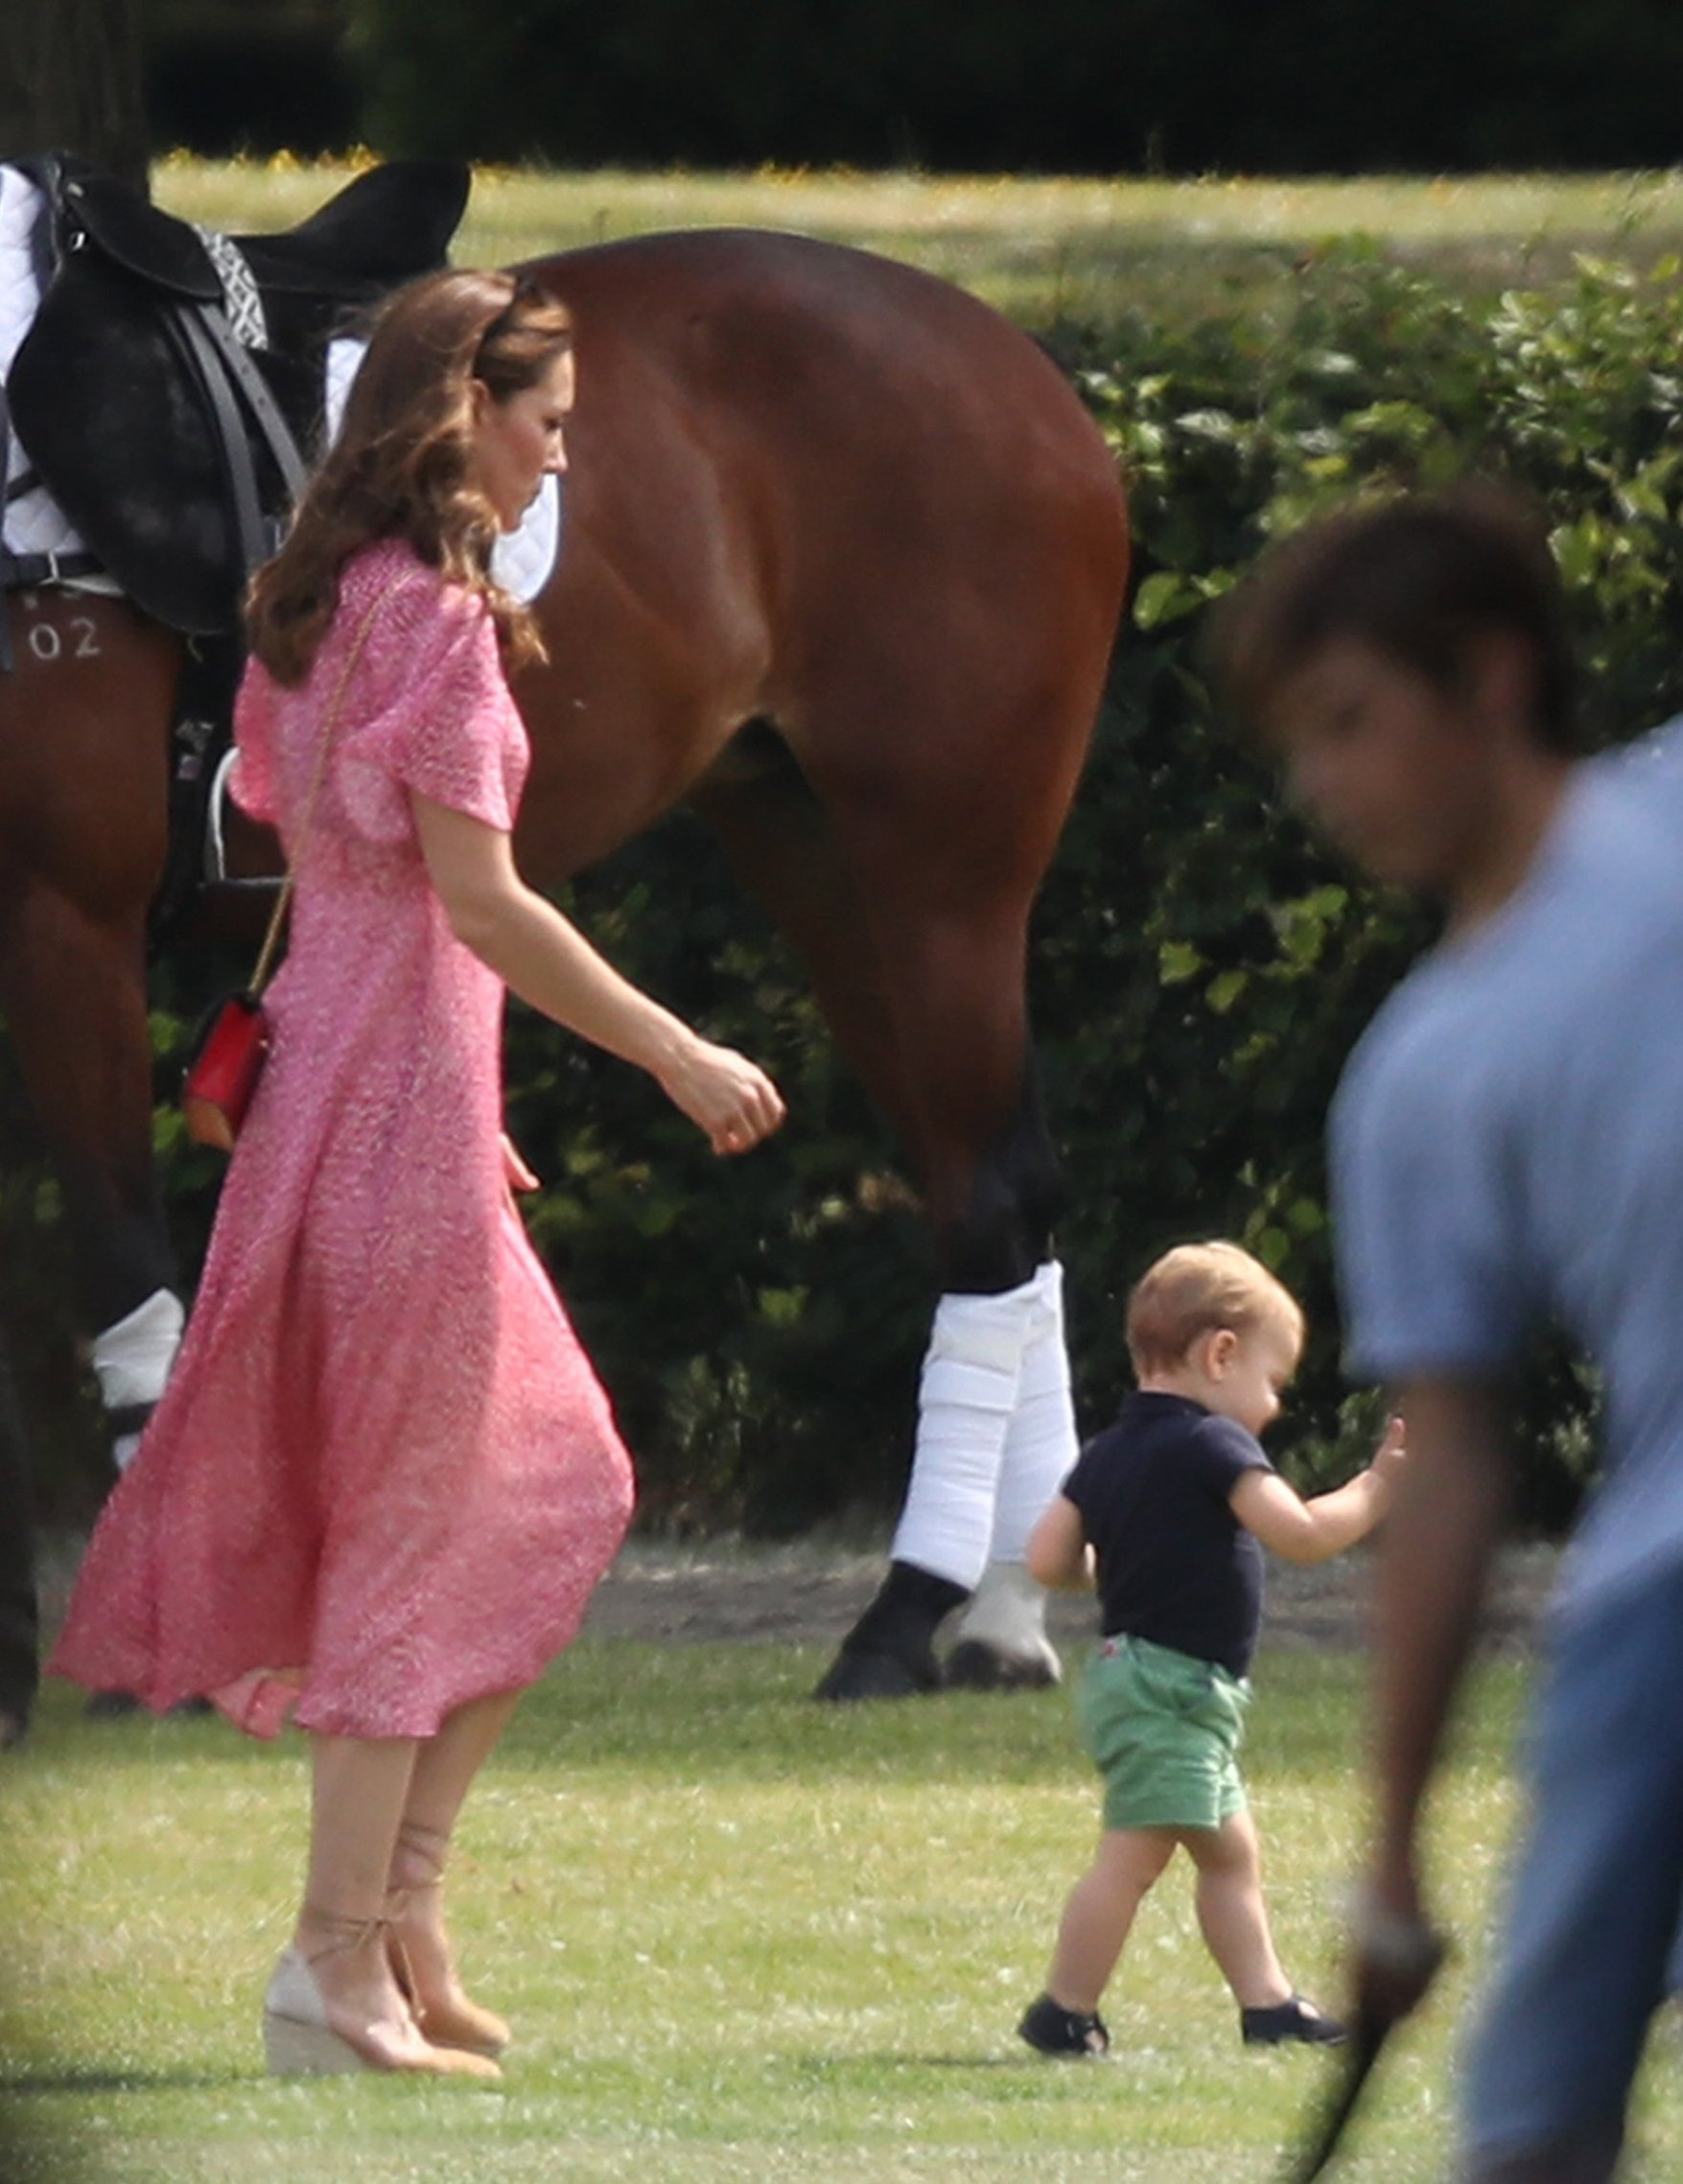 The Duchess of Cambridge and Prince Louis attend the King Power Royal Charity Polo Day at Billingbear Polo Club, Wokingham, Berkshire., Image: 456767460, License: Rights-managed, Restrictions: , Model Release: no, Credit line: Profimedia, Press Association